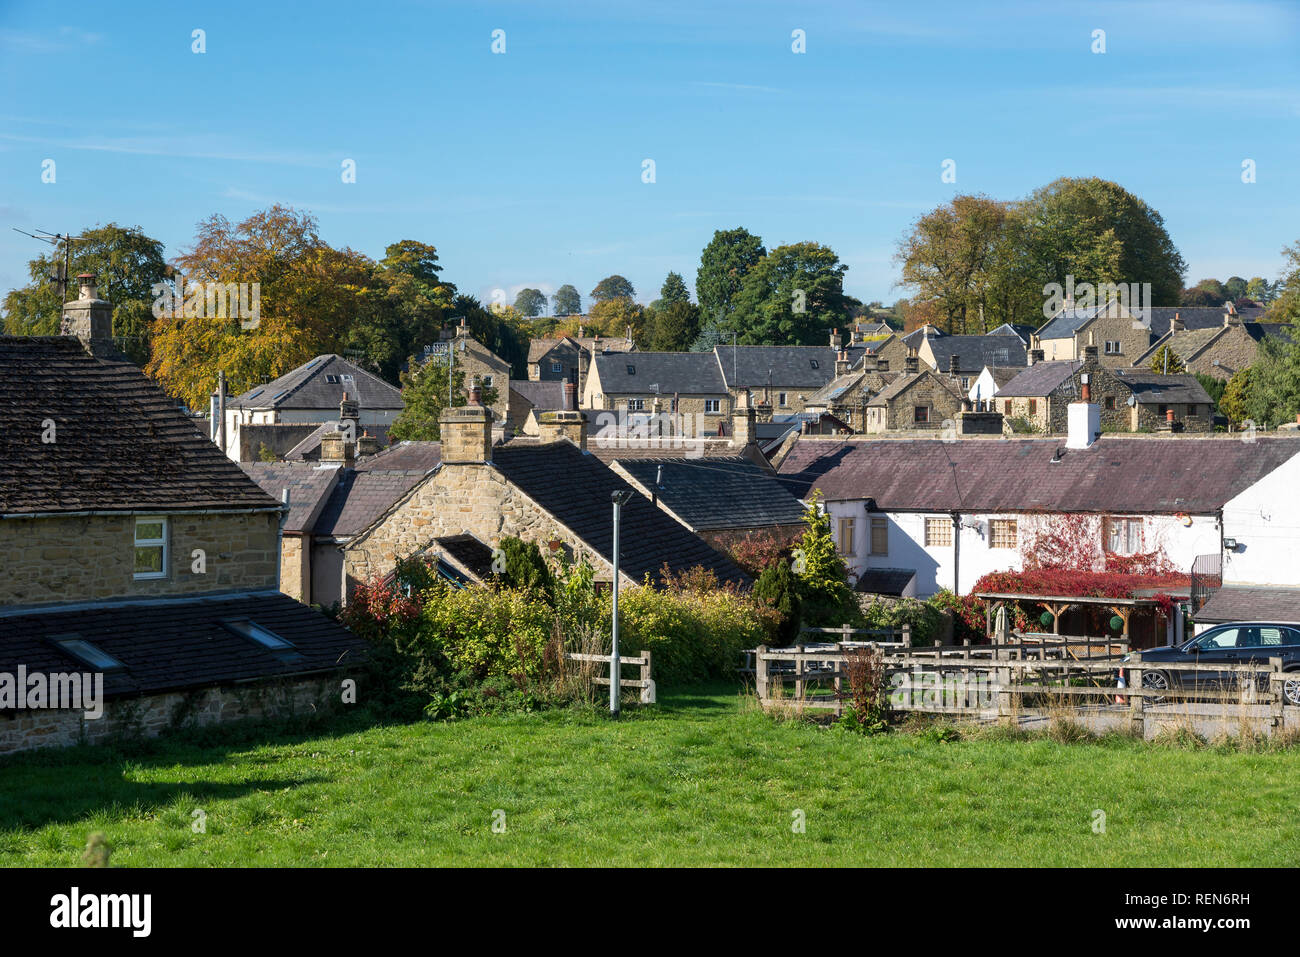 The village of Eyam in the Peak District, Derbyshire, England. - Stock Image